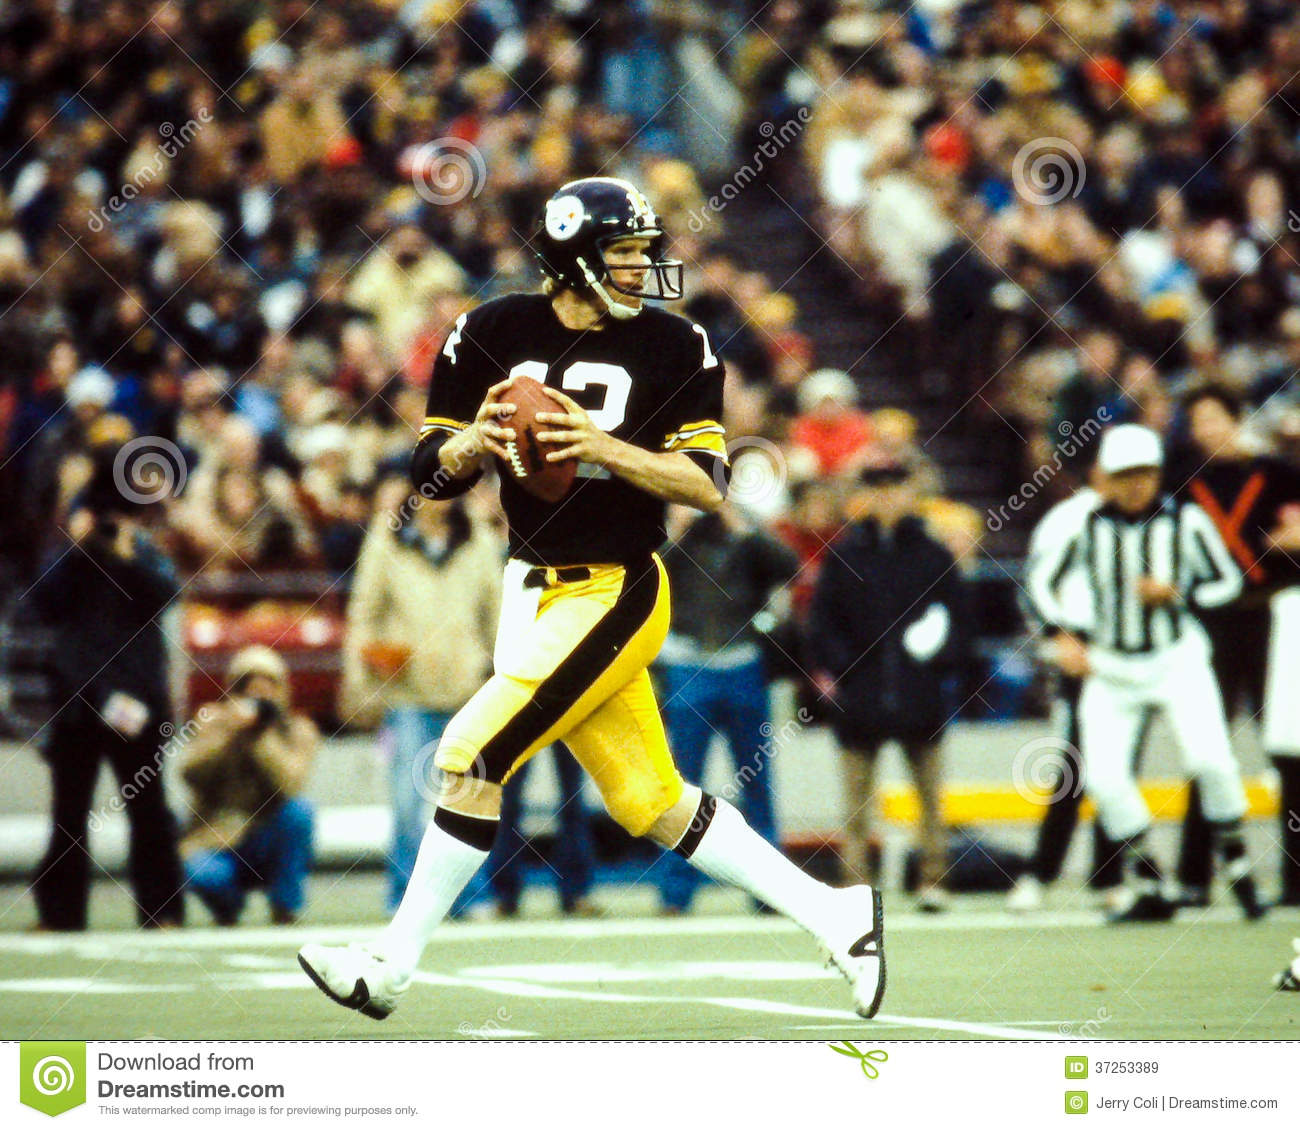 Pittsburgh steelers hall of fame qb terry bradshaw image taken from